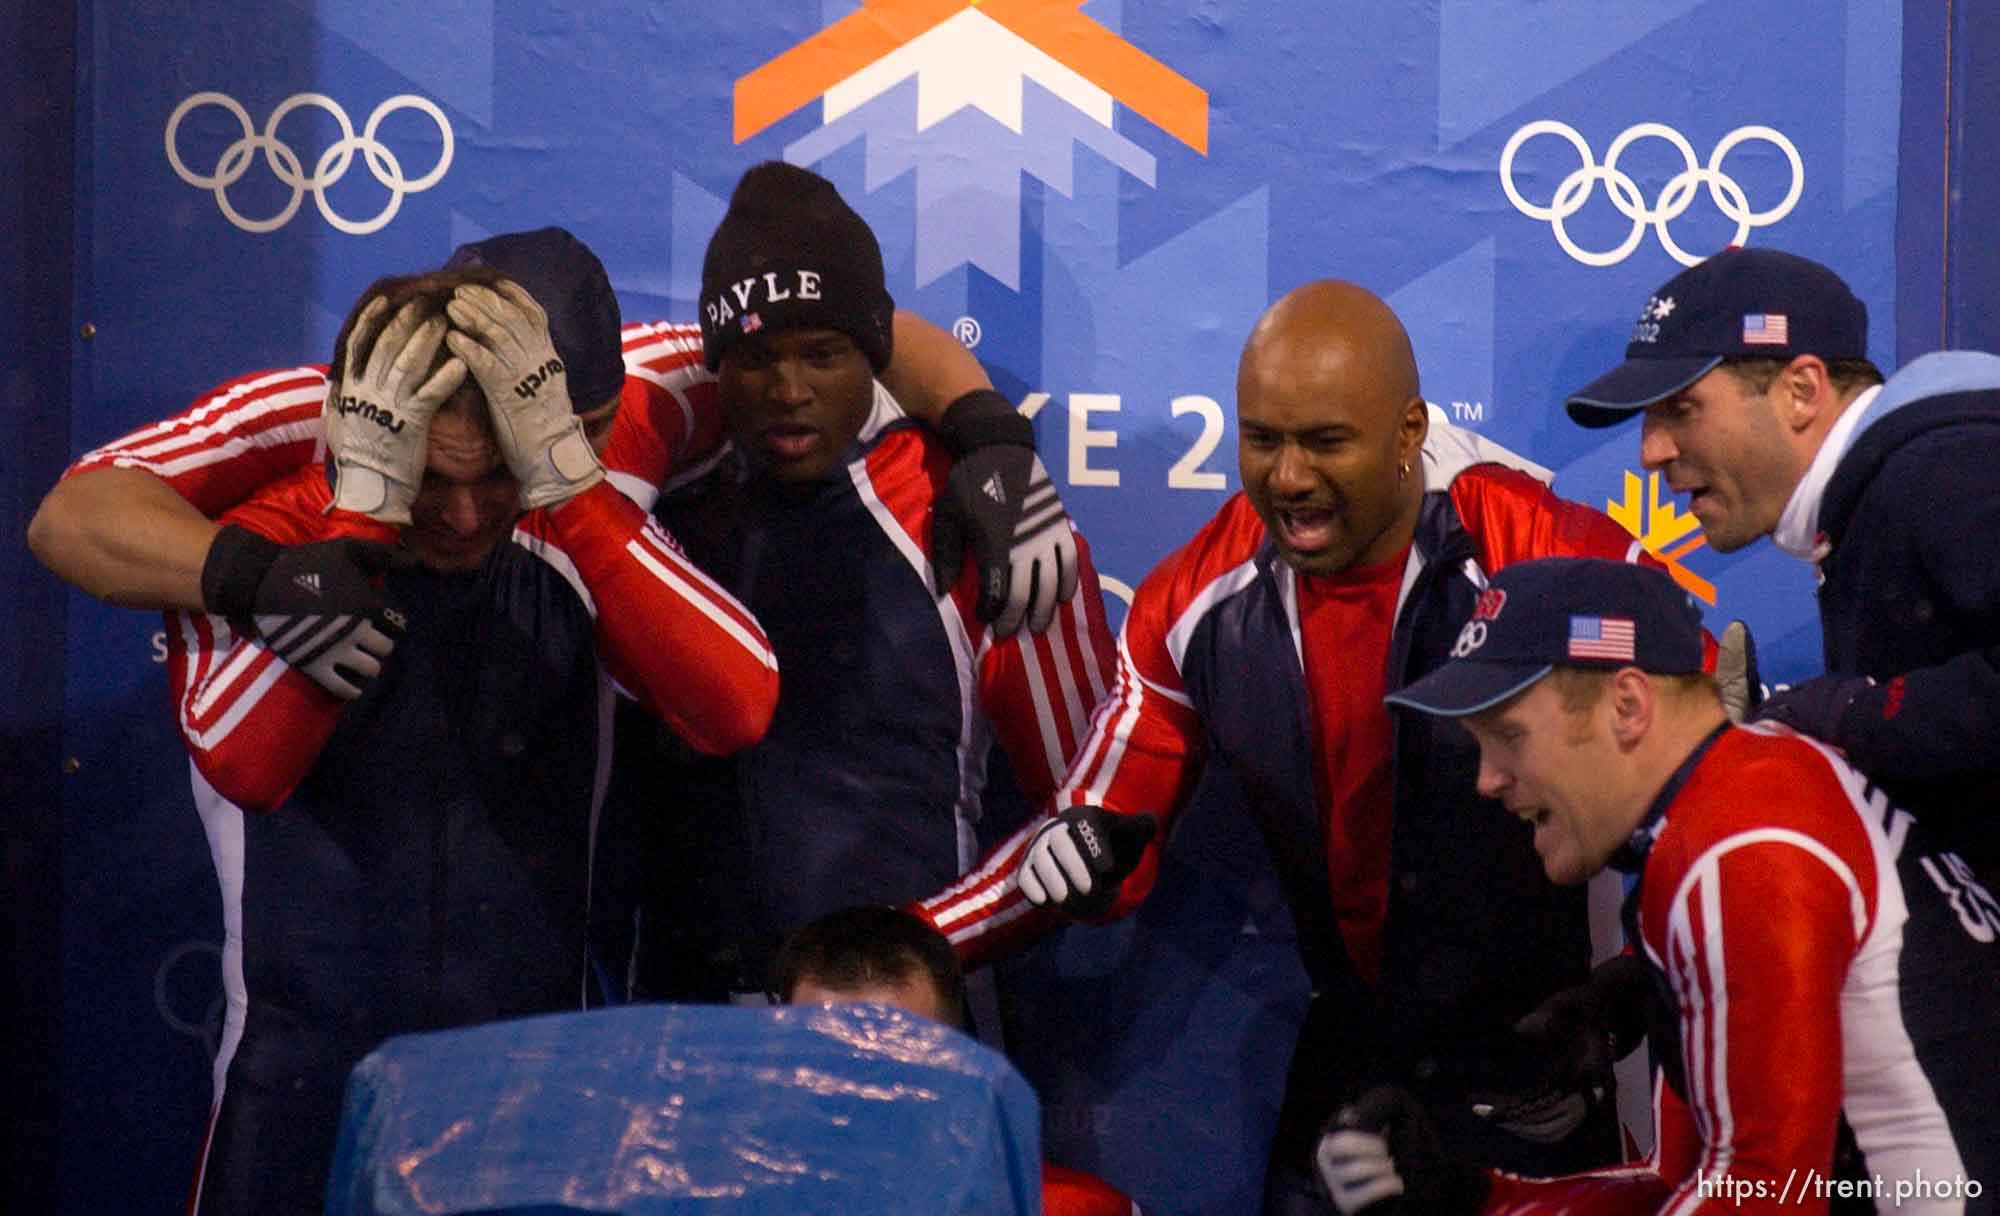 Four-Man Bobsled competition, Saturday afternoon at the Utah Olympic Park, 2002 Olympic Winter Games.; 02.23.2002, 5:50:55 PM